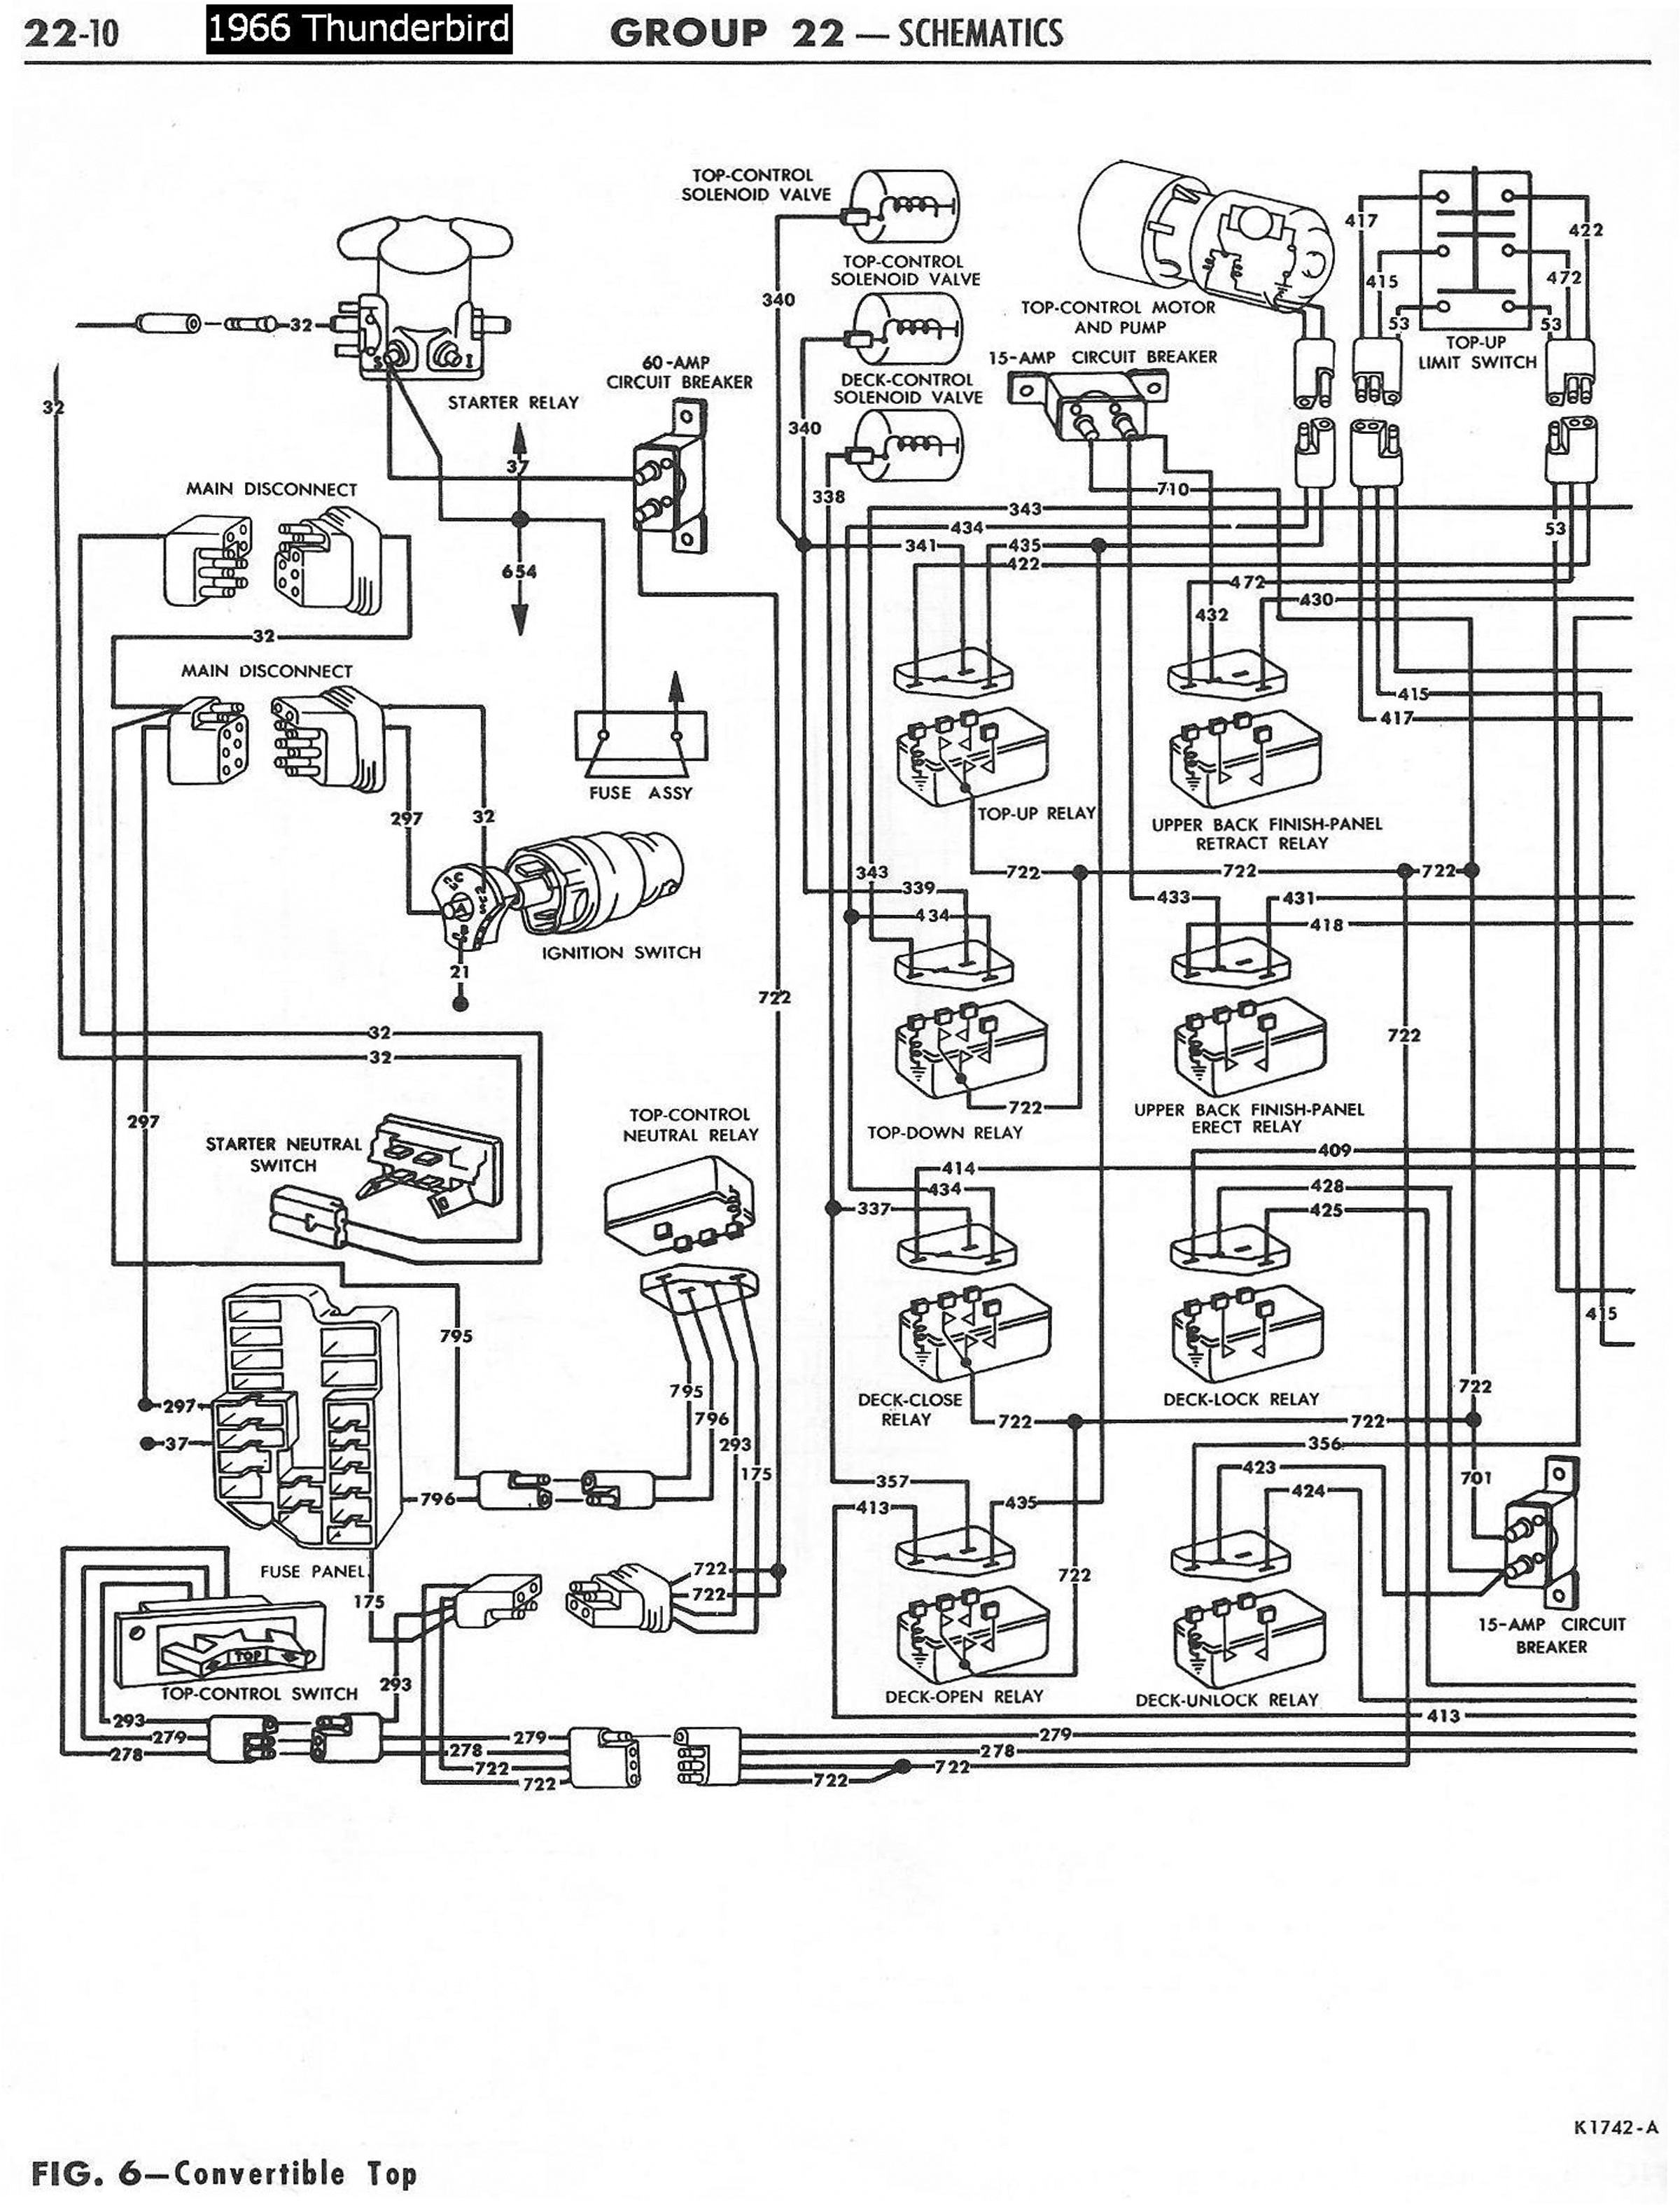 1968 Ford Turn Signal Wiring Diagram List Of Schematic Circuit F100 1958 68 Electrical Schematics Rh Squarebirds Org